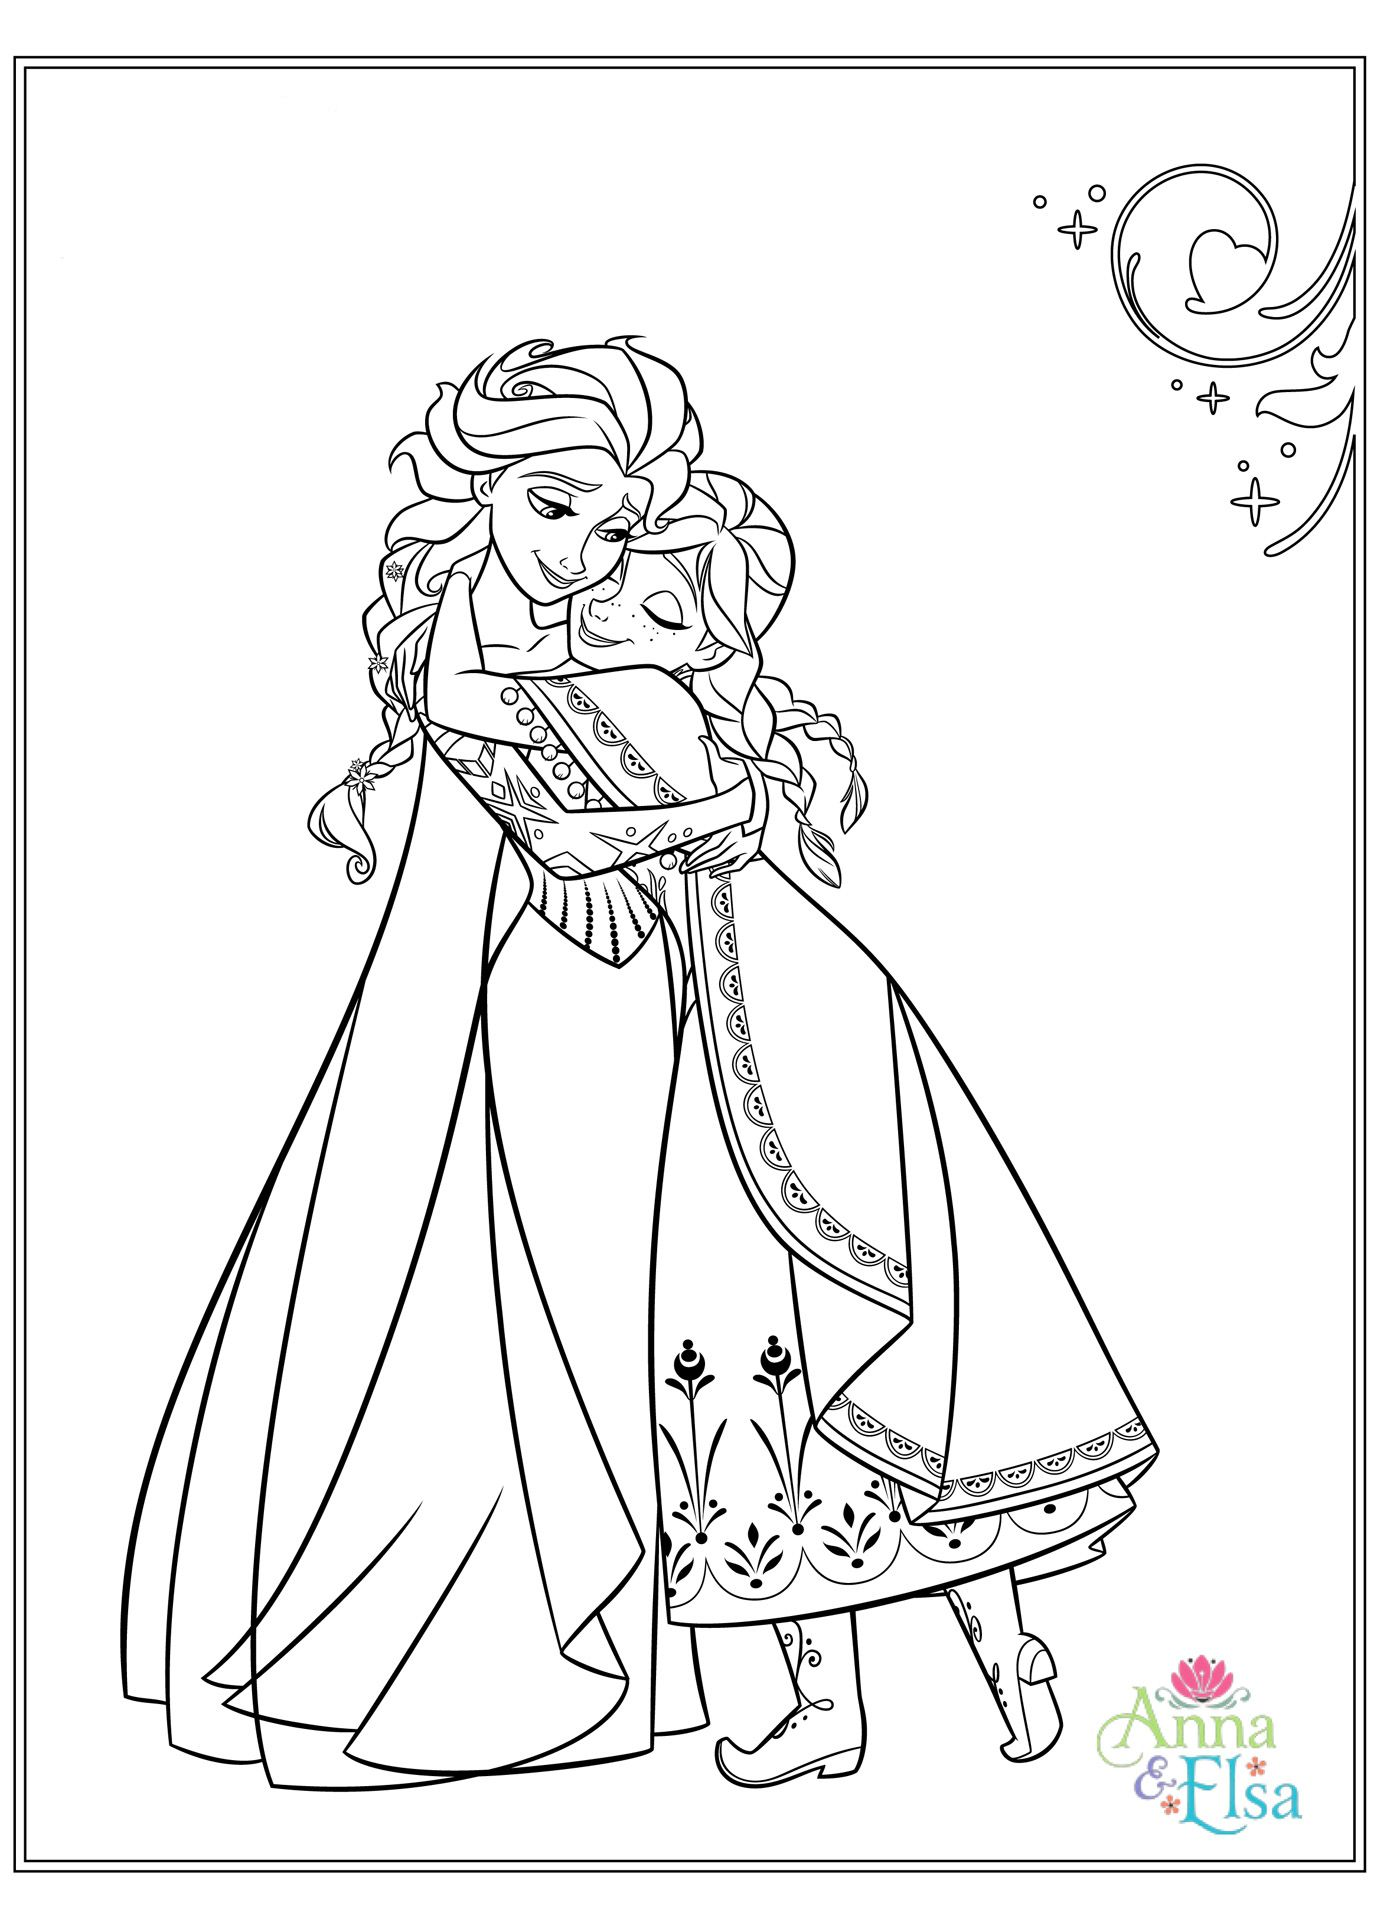 Discover Ideas About Frozen Coloring Pages